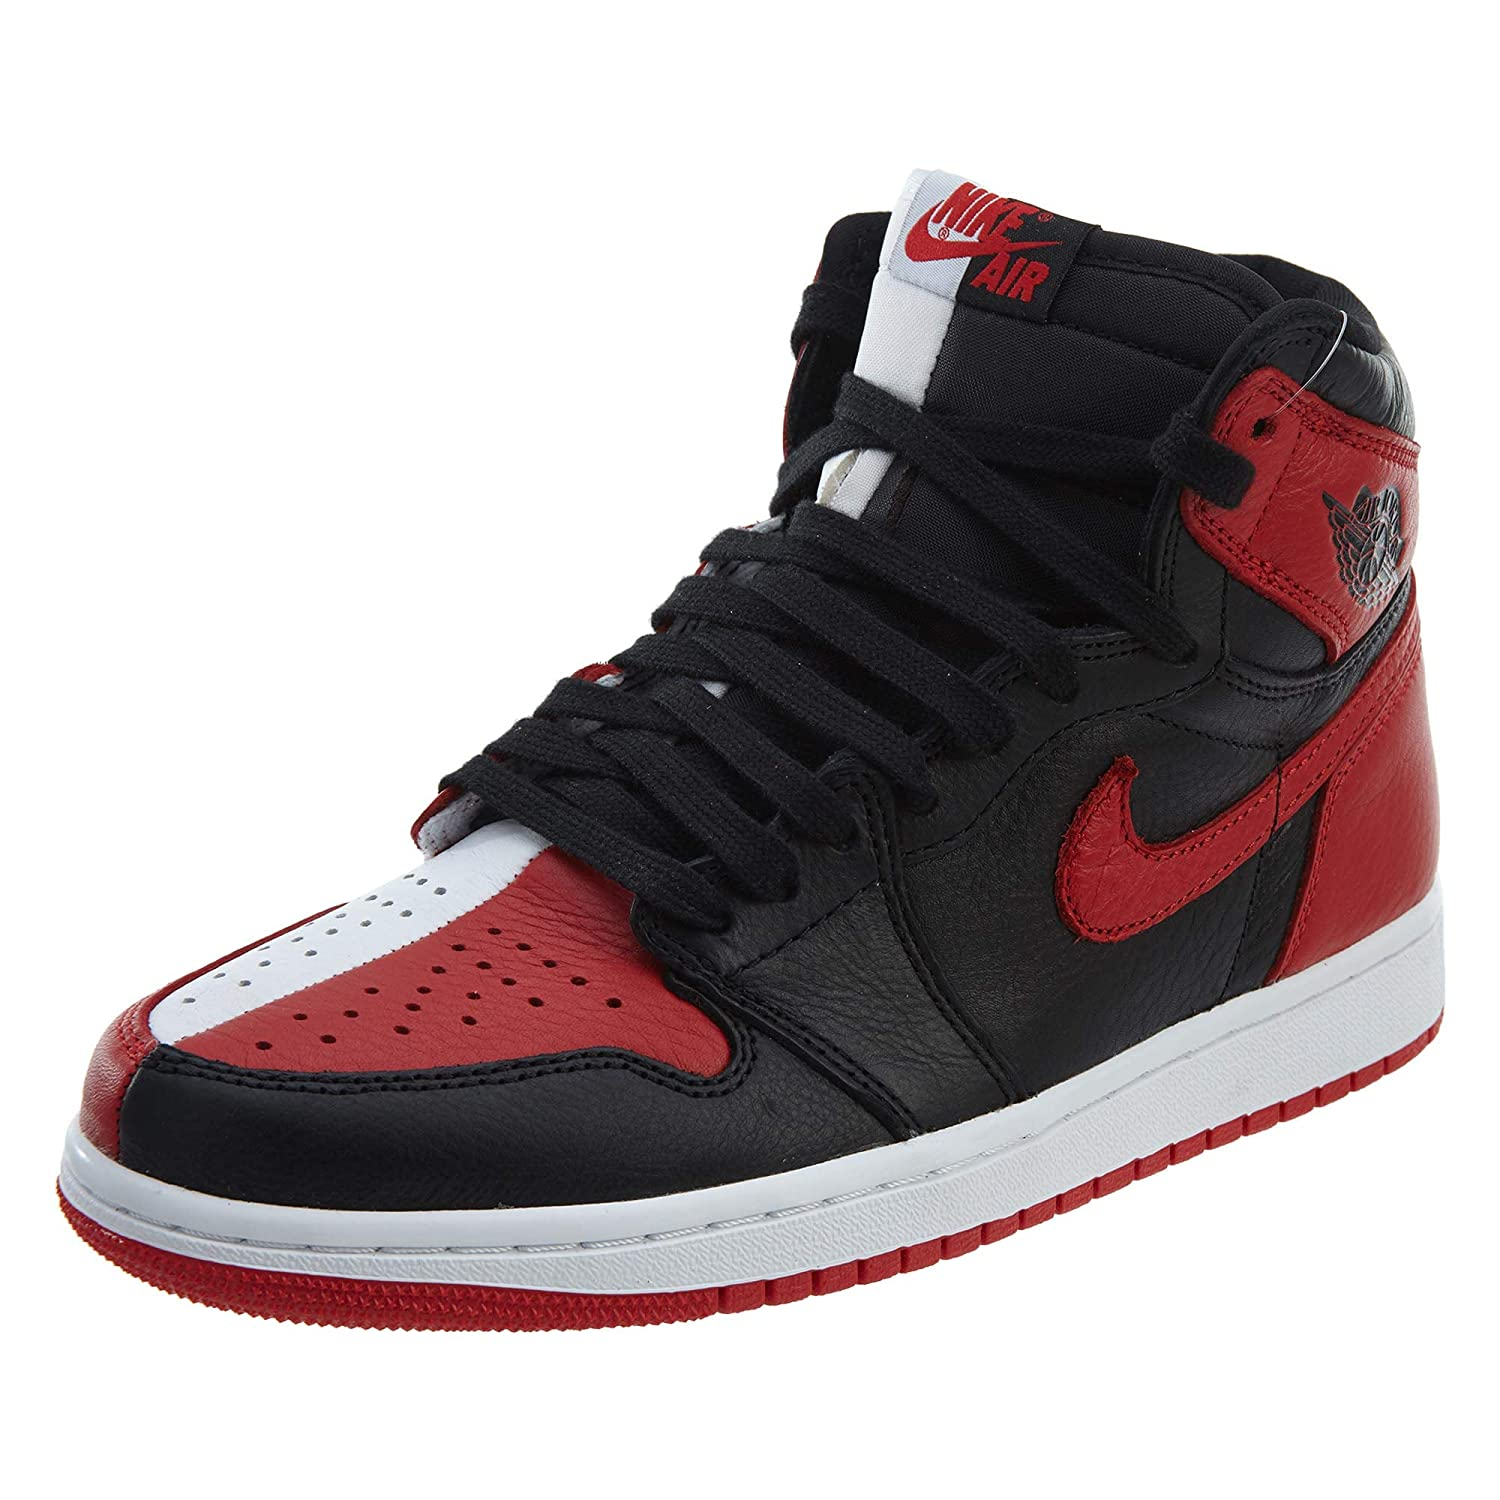 "Nike Air Jordan 1 Retro High OG NRG 861426 061""Homage to Home"